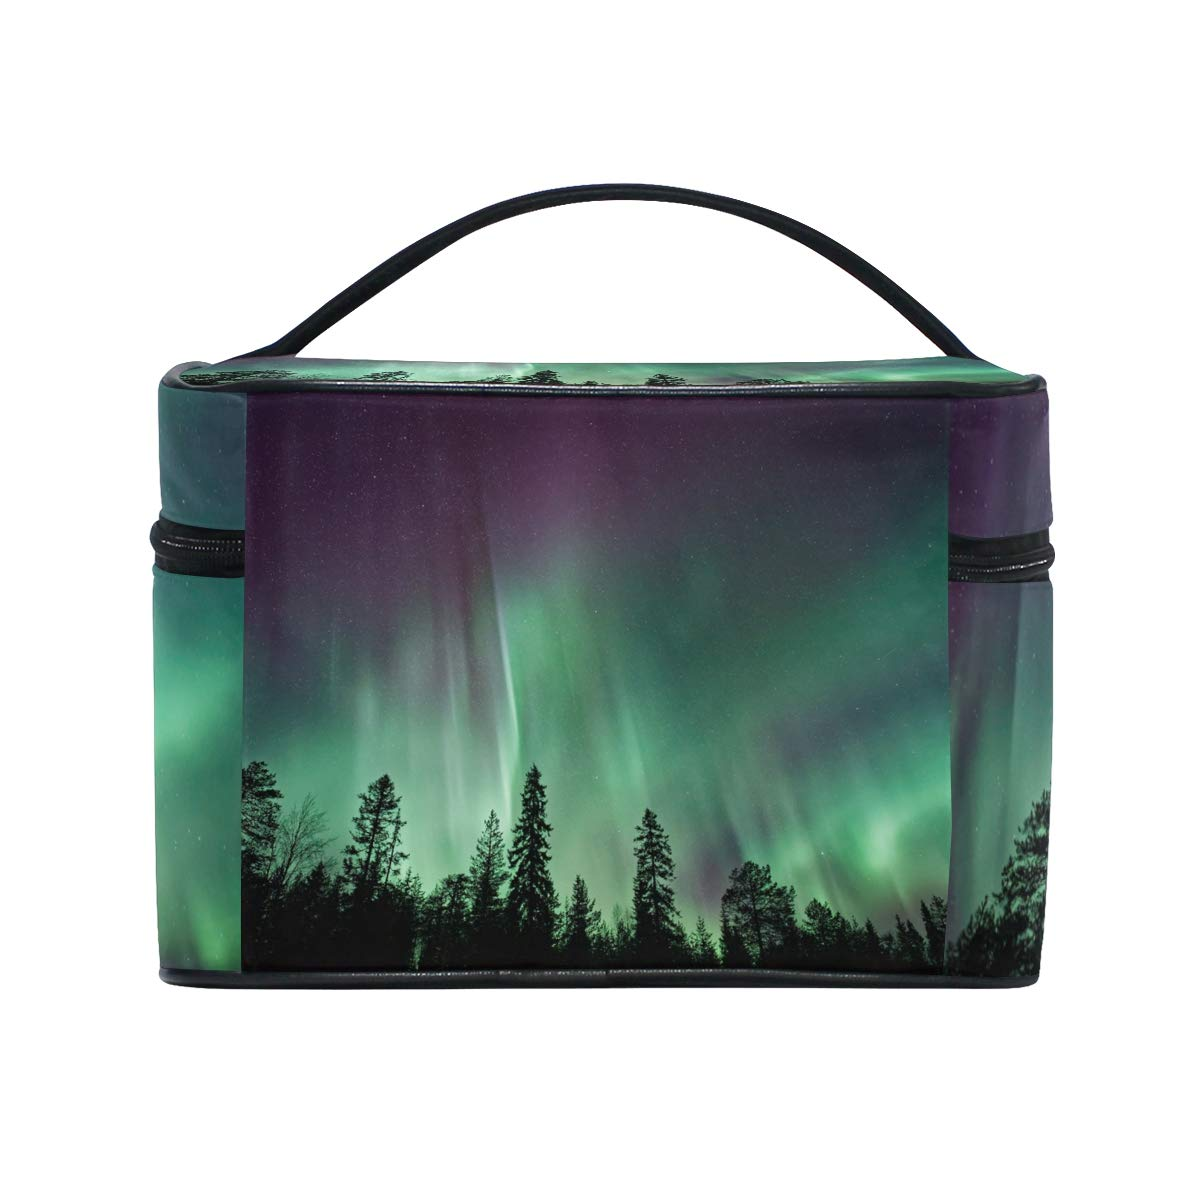 a0b3de38f282 Amazon.com : Dragon Sword Forest Aurora Cosmetic Toilet Bag for ...